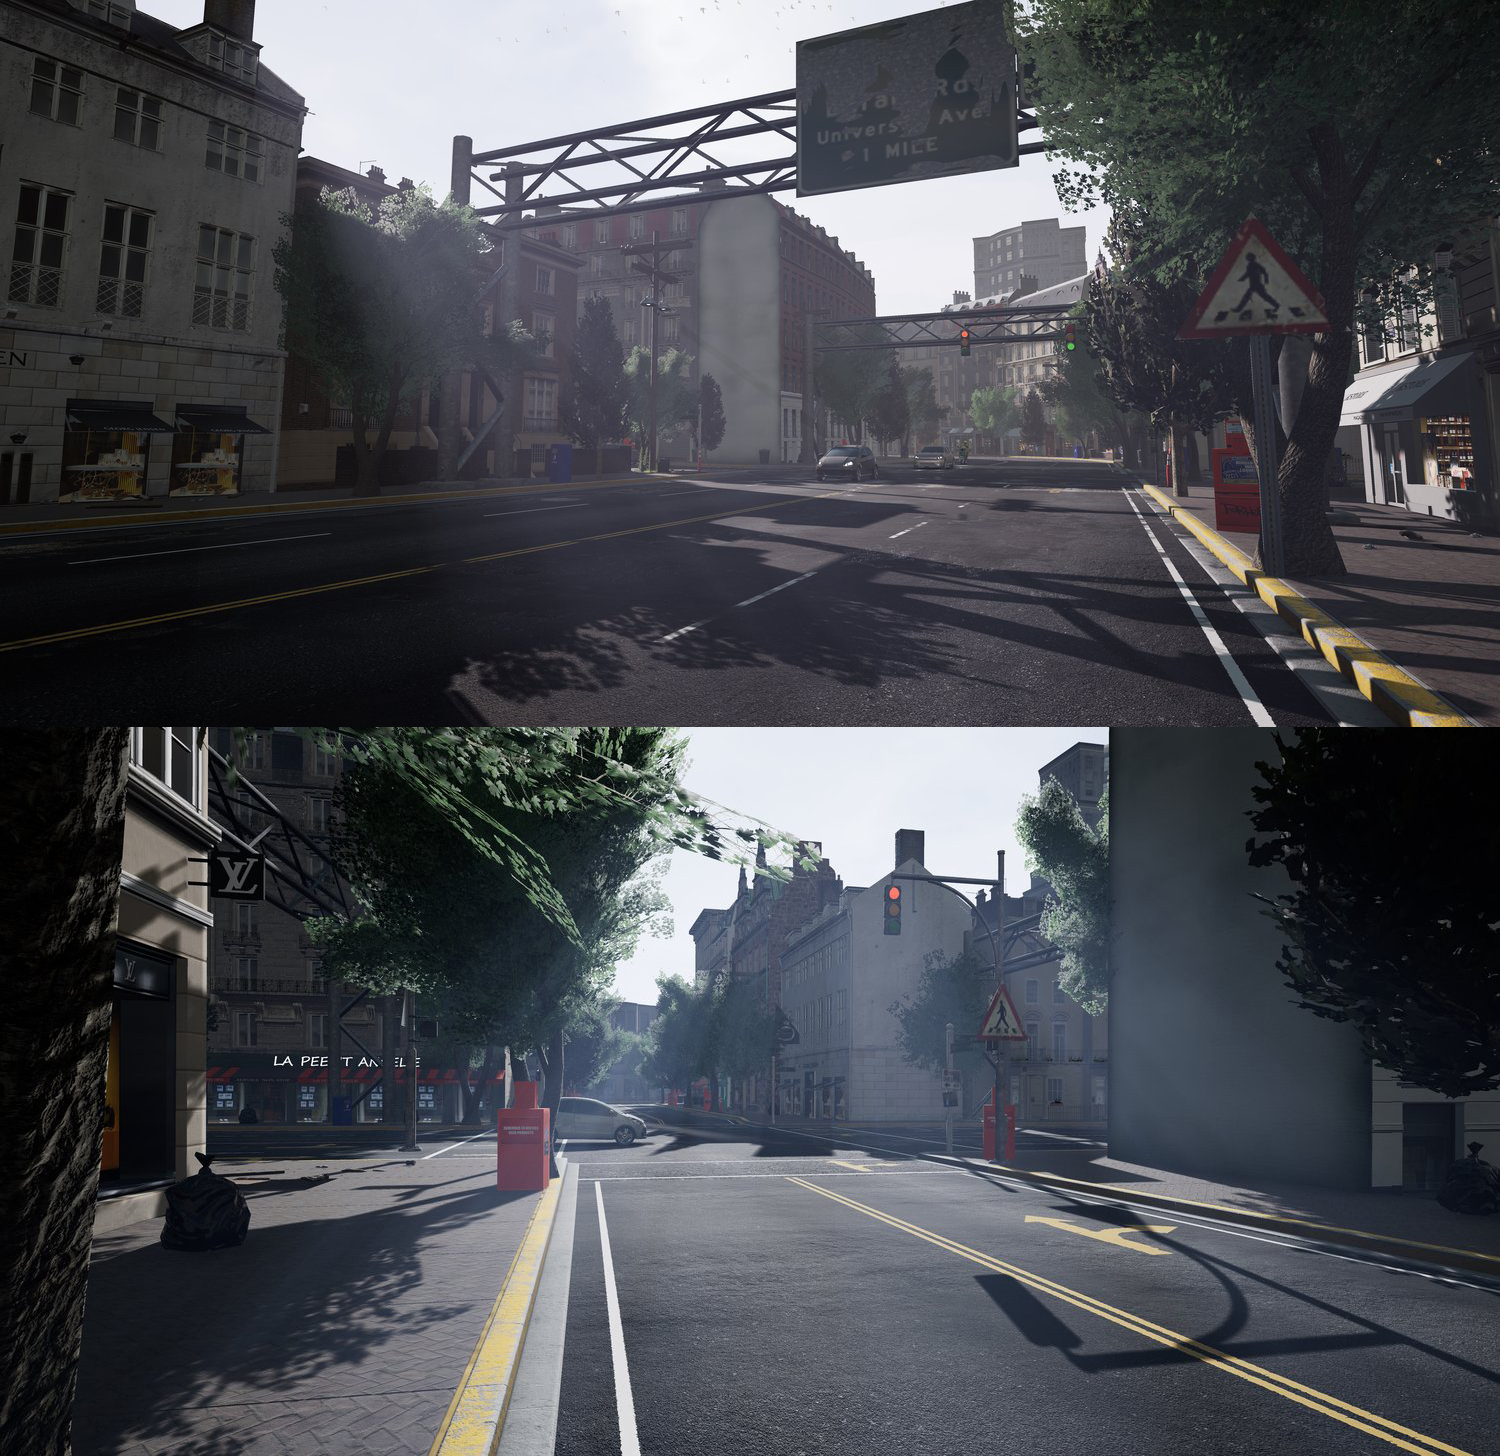 Realistic computer images can be generated in real time from video games, and promising research has been done using the commercial game Grand Theft Auto V, which is built around a large and visually realistic open-world environment, focused on the first-person perspective of cities and city traffic. - The years spent developing the visual realism of the game may give it advantages when used for AI training compared to other solutions.However, commercial games, like GTA V, have drawbacks. Unless you get access to the source code, you are limited in what data and what annotation you can generate.